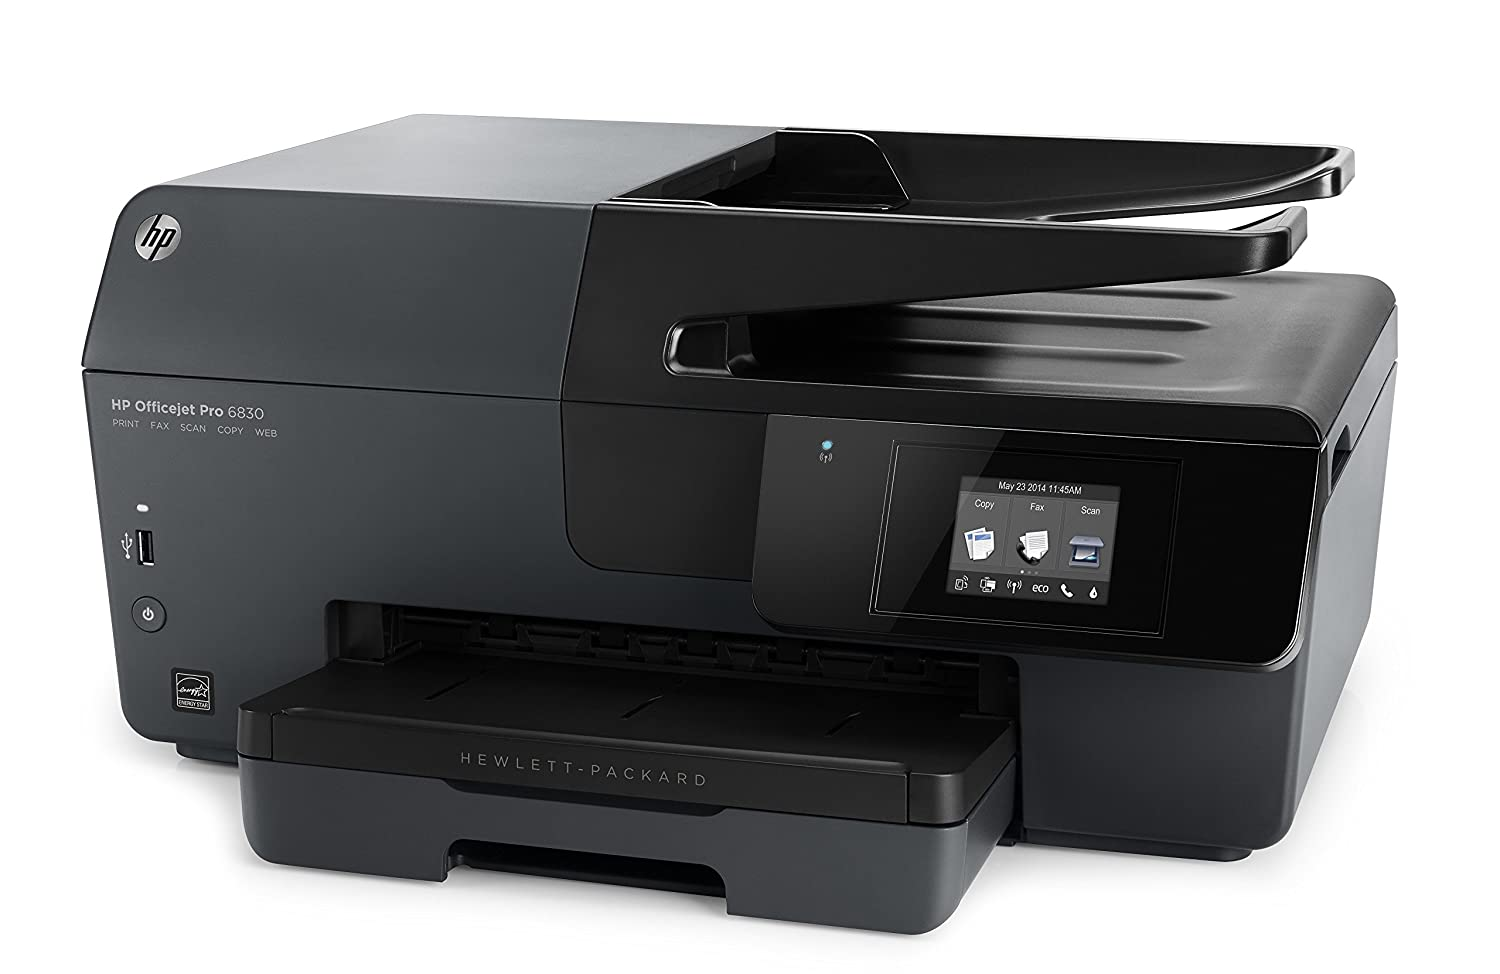 HP Officejet Pro 6830 - Impresora multifunción de tinta - B/N 29 PPM, color 24 PPM